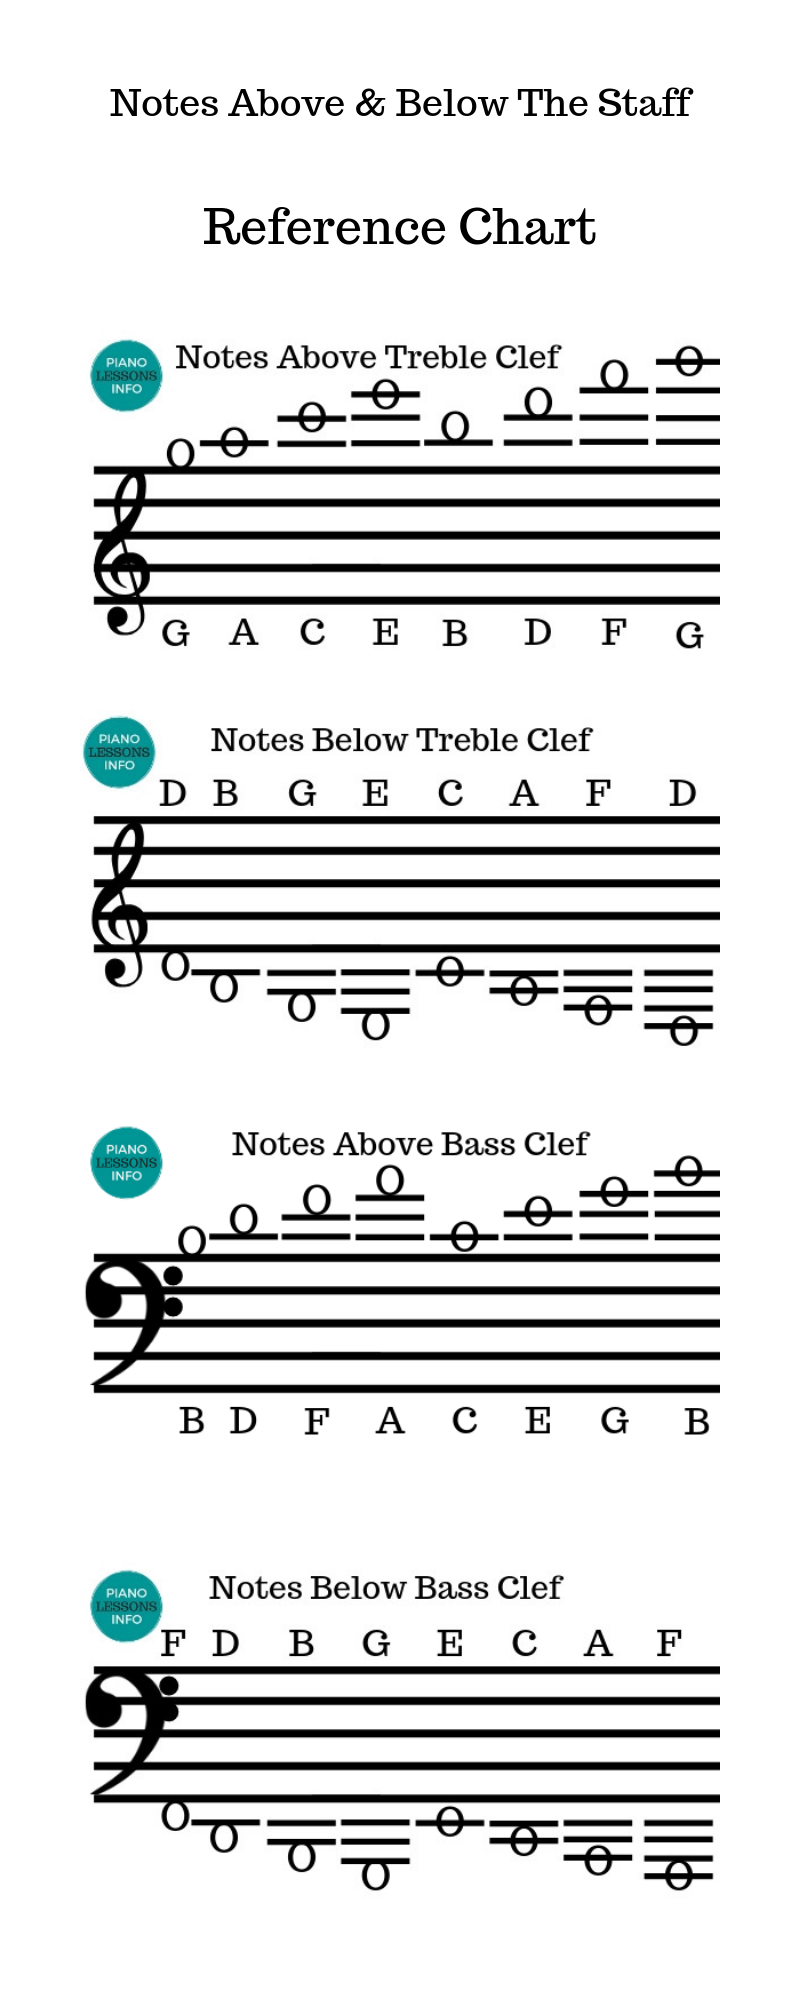 Notes Above & Below the Staff Reference Chart